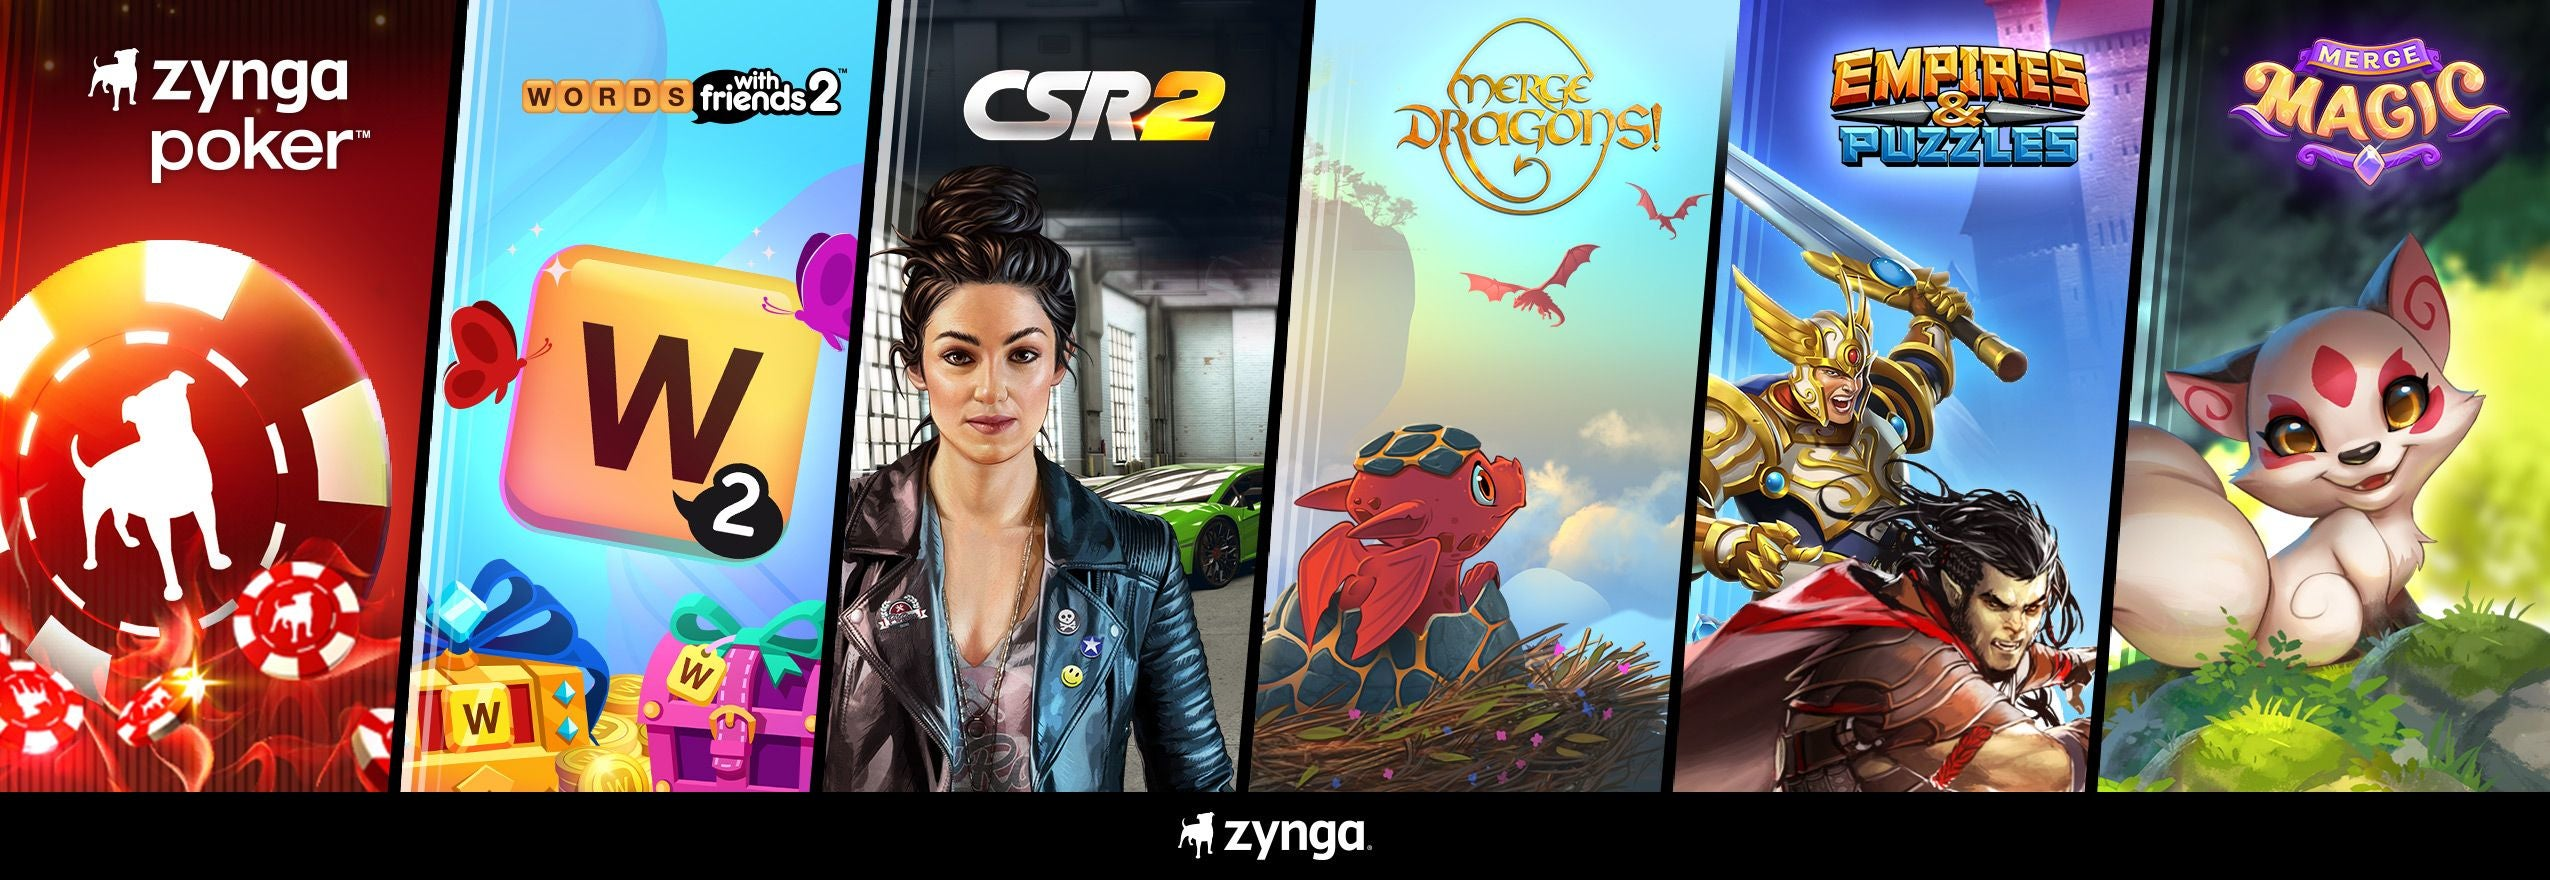 Why Zynga Stock Has Skyrocketed 55.9% in 2020 | The Motley Fool